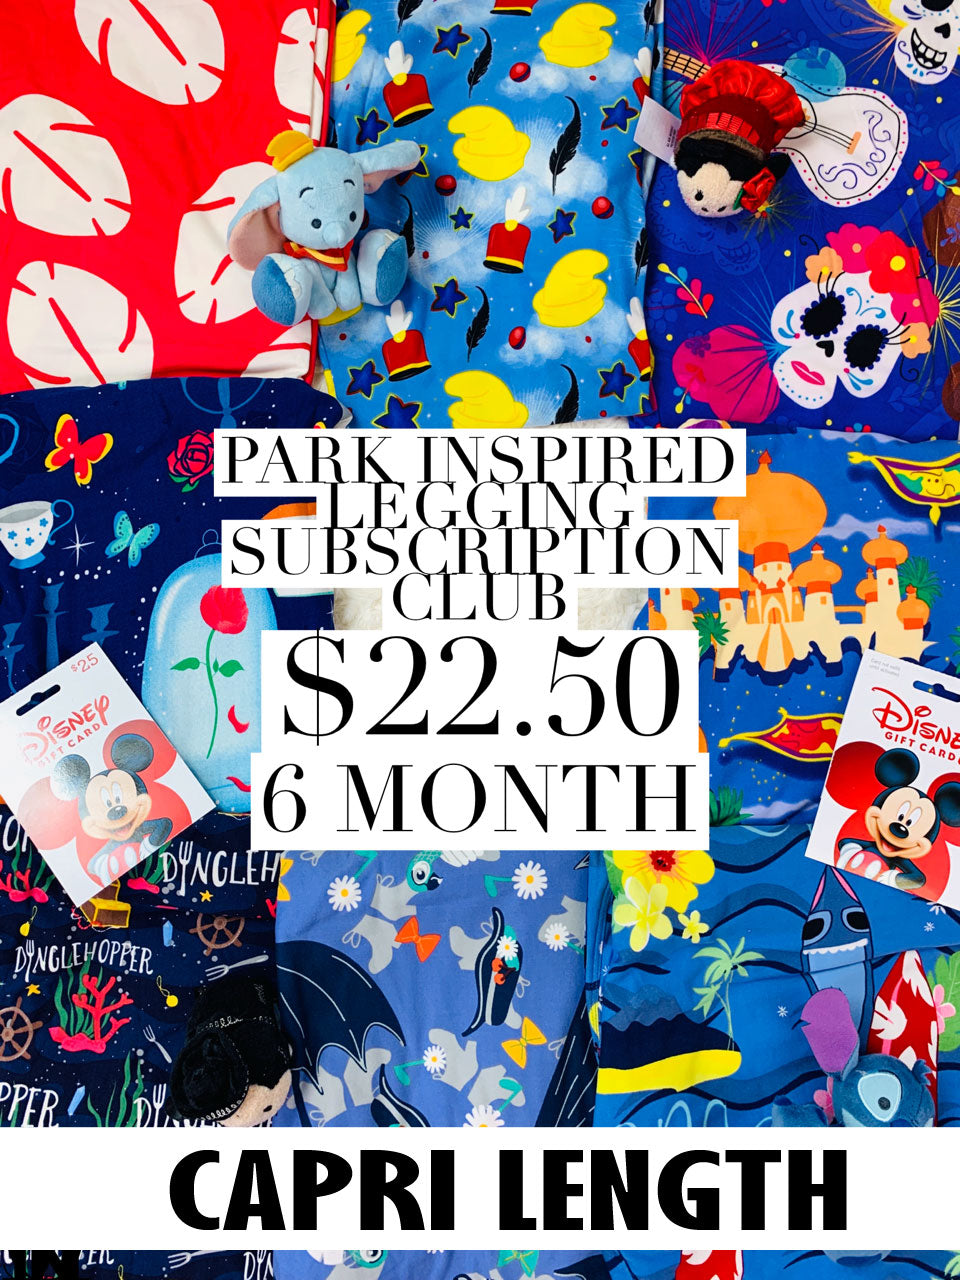 Park Inspired Capri Leggings Subscription Club - 6 Month Subscription - Ambrie